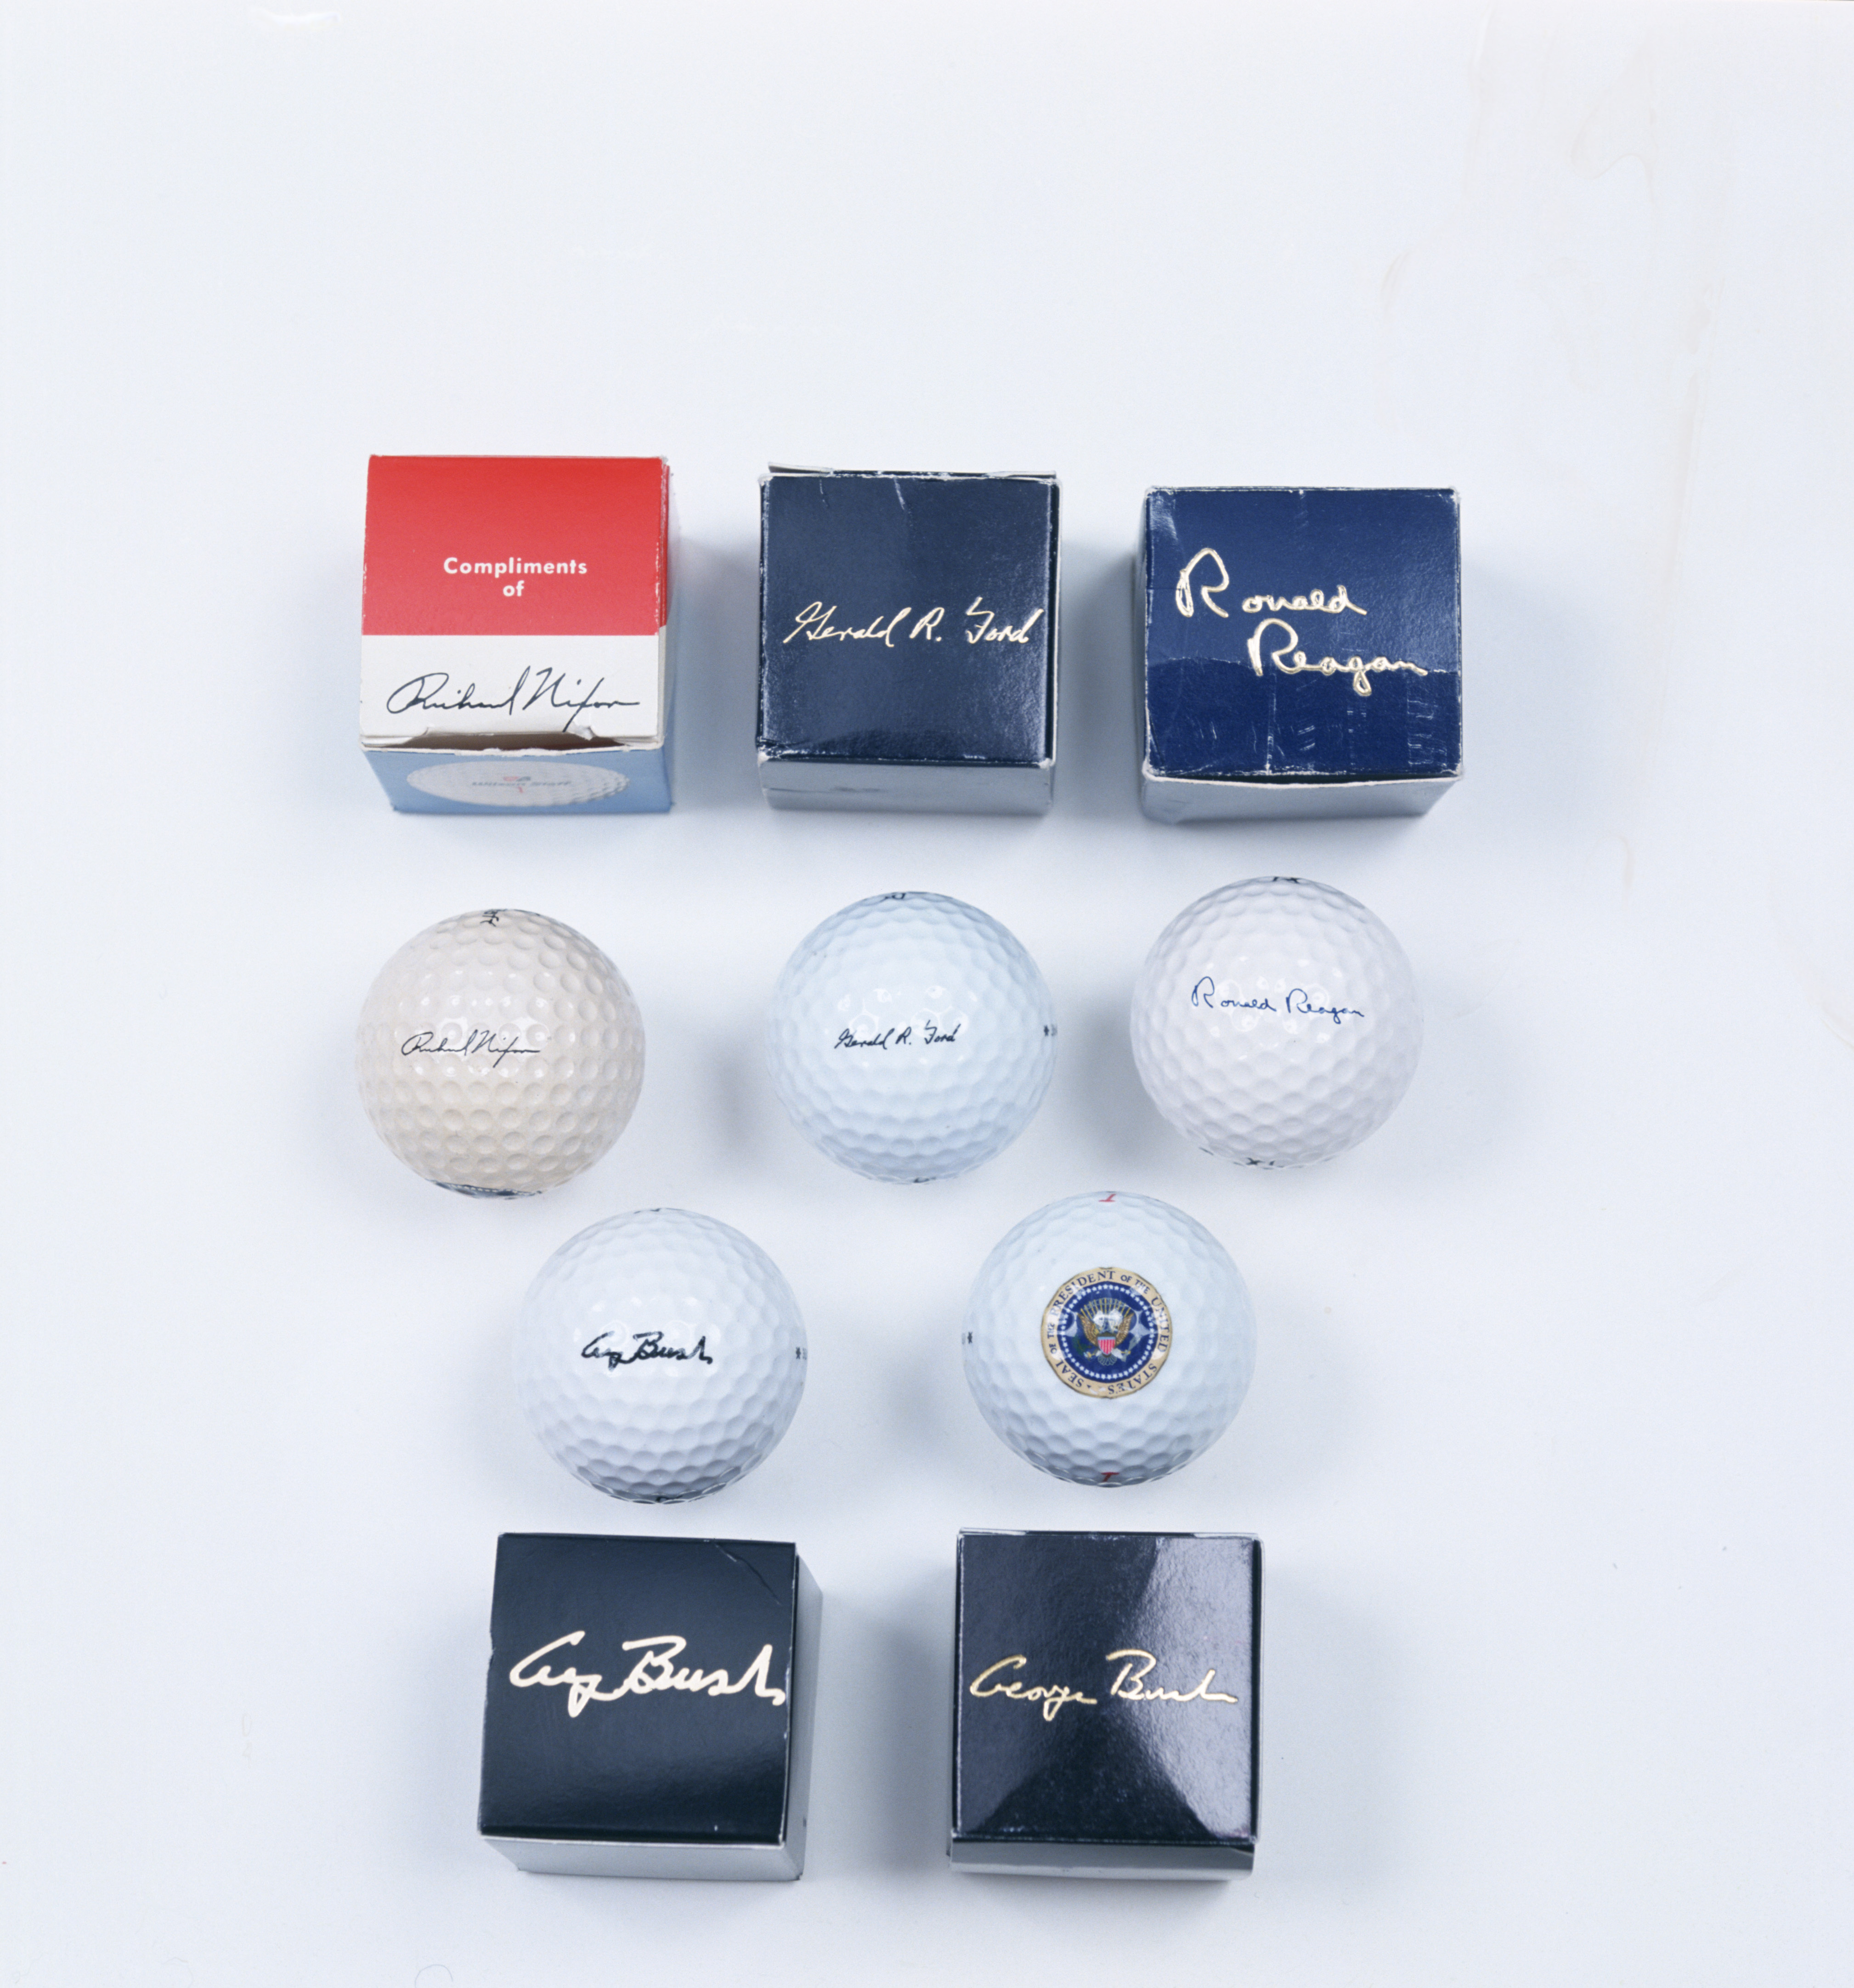 Presidential golf balls and boxes signed by Richard Nixon, Gerald Ford, Ronald Reagan and George Bush senior.